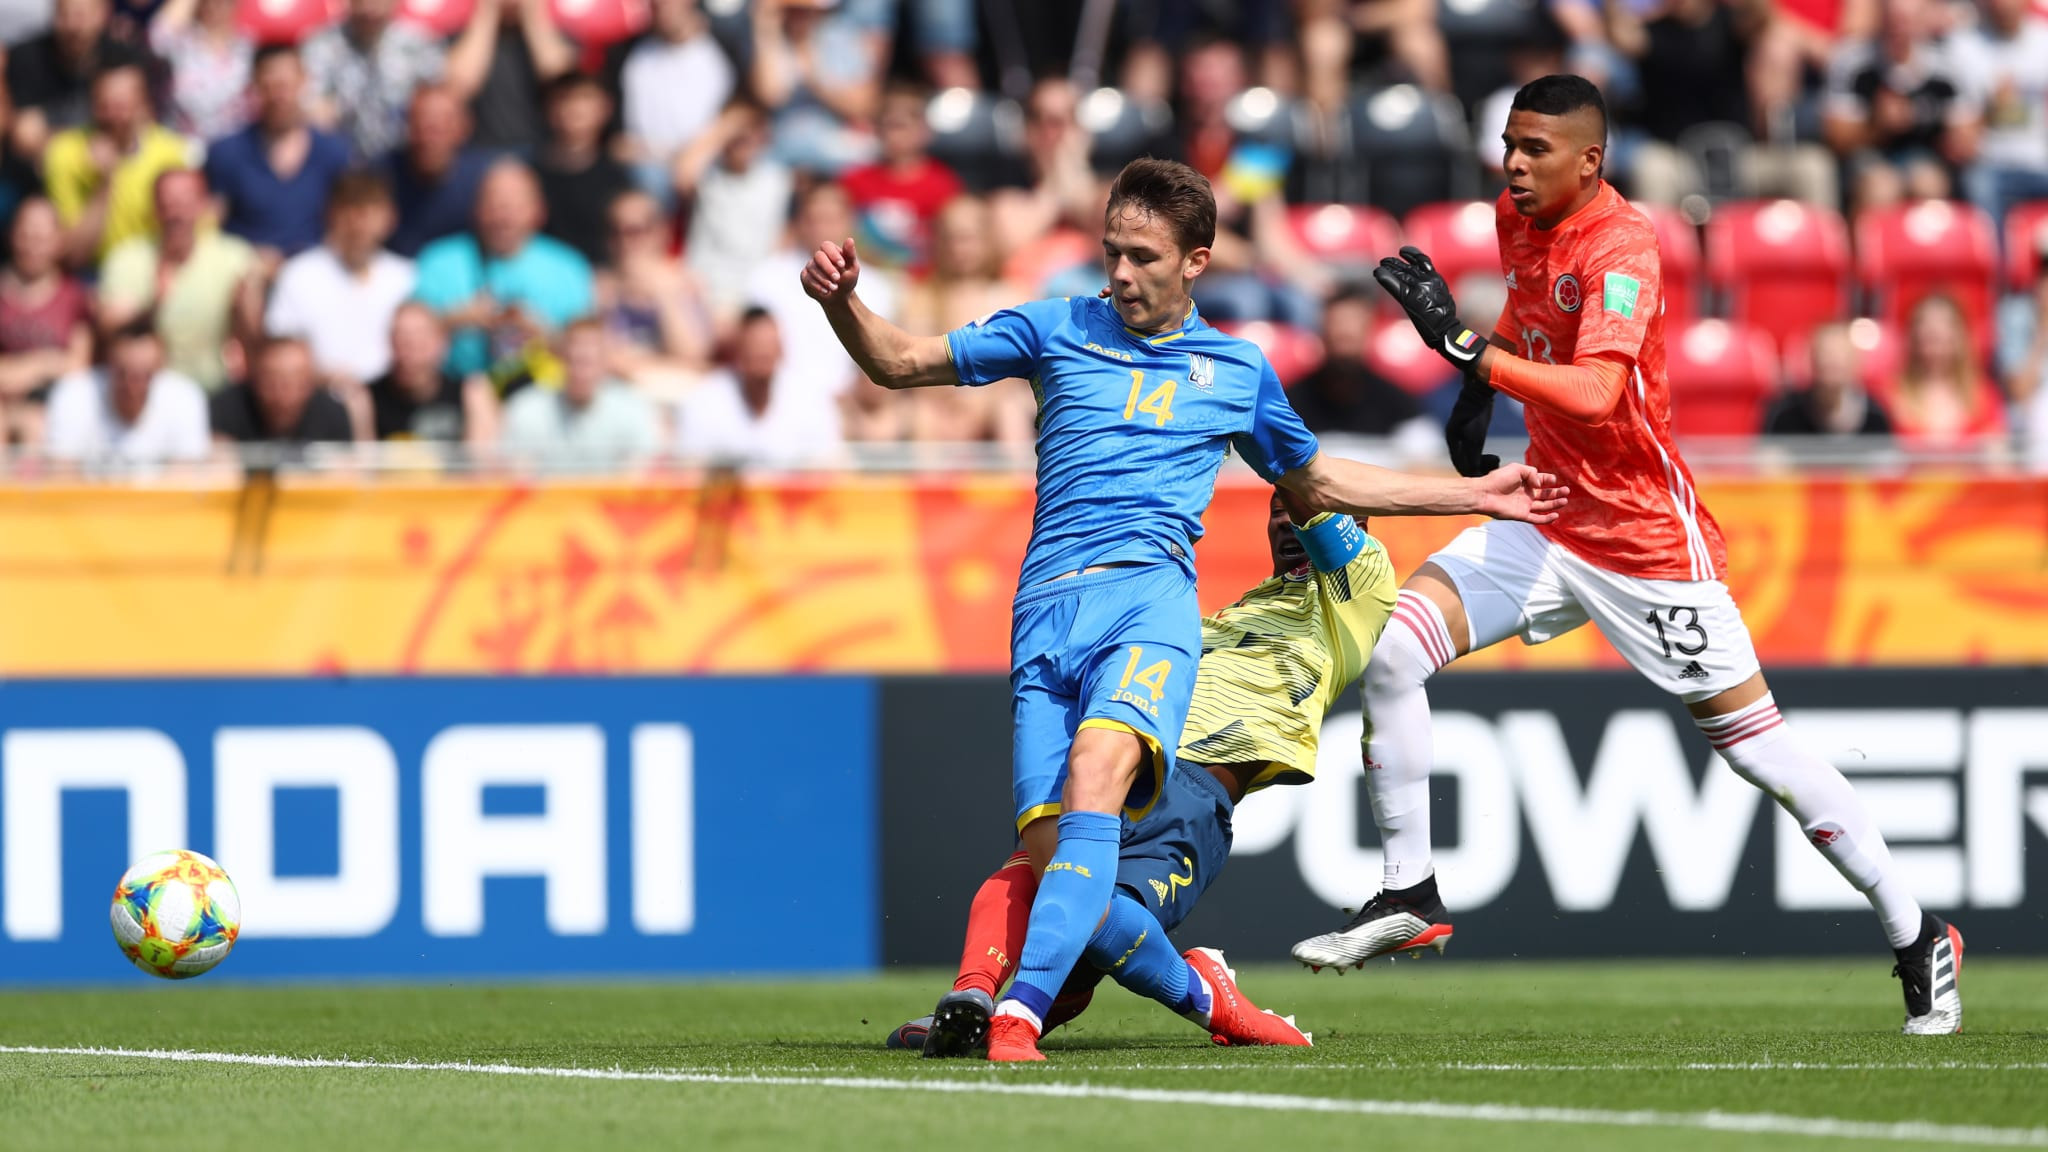 Danylo Sikan scored the only goal as Ukraine beat Colombia at the Under-20 World Cup ©Getty Images